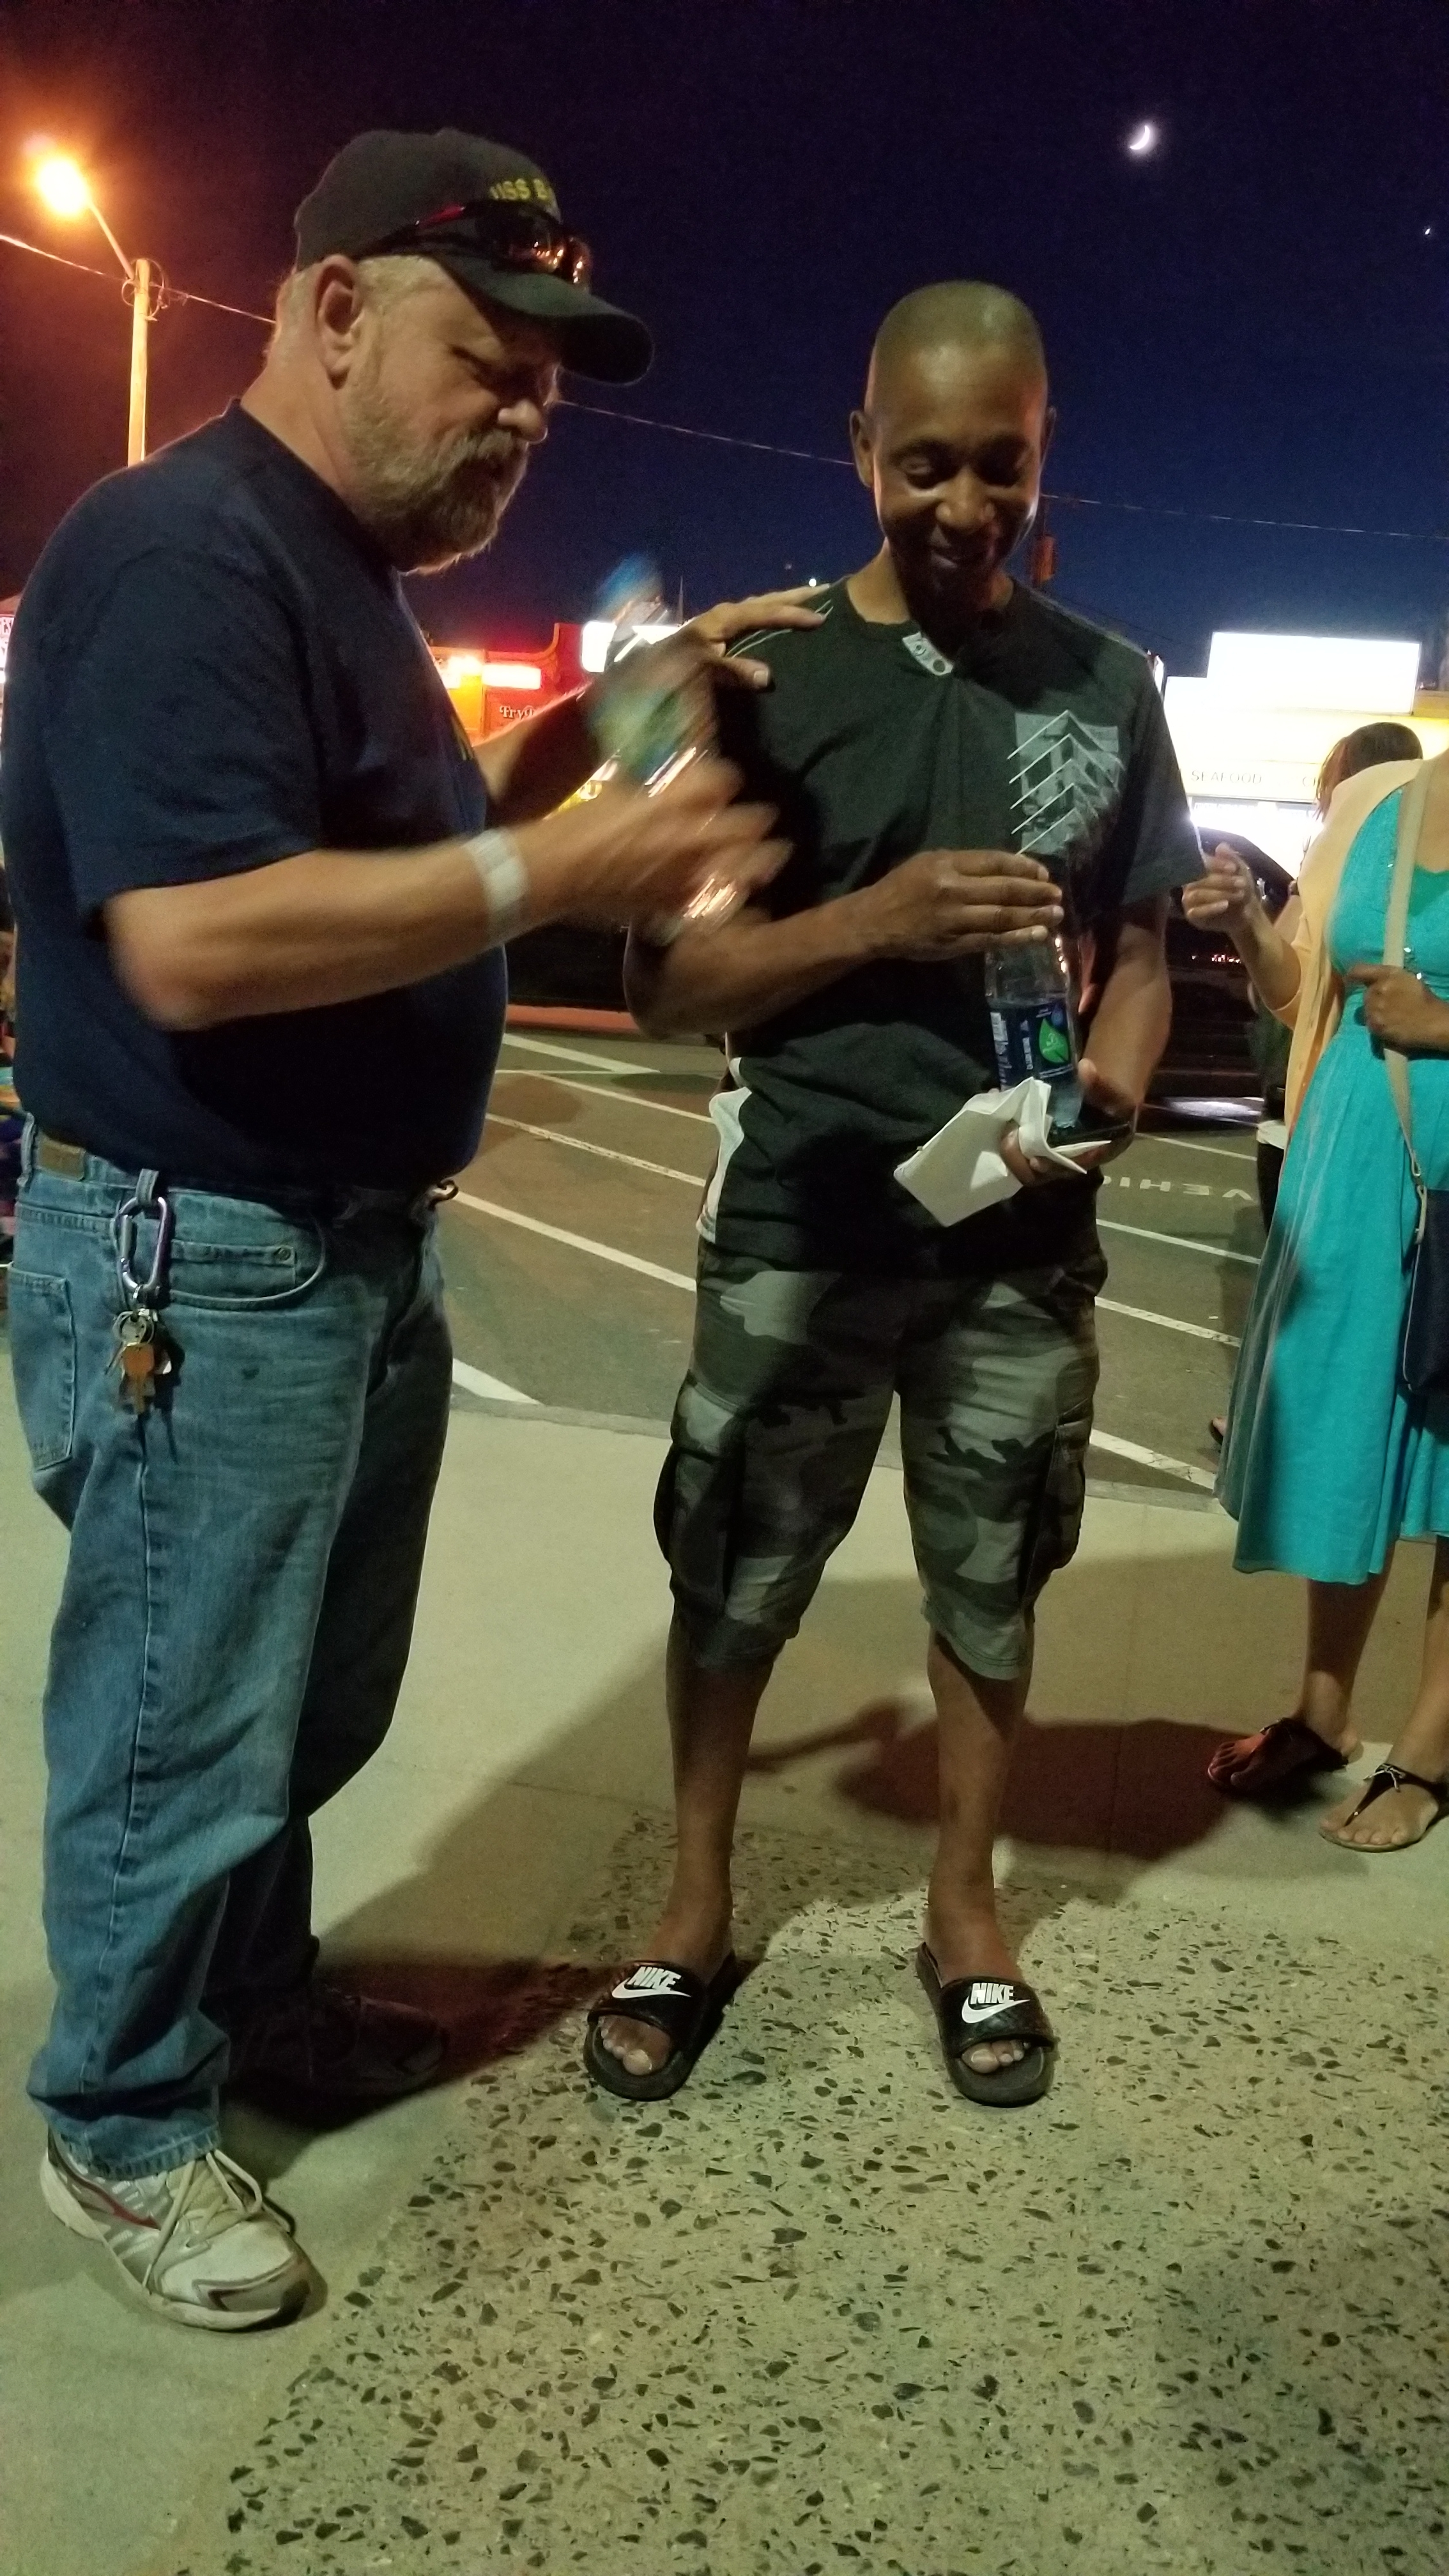 This is J.R. (right). He was heckling me and was clearly angry with Jesus. I answered a number of J.R.'s objections, but he still balked. So I asked him, 'J.R. if I could answer every single objection you pose and you really believed that Jesus is Lord, would you worship Him?' And J.R. said no. So I answered, 'there's your problem. It's not a lack of evidence that is holding you back, but that you just don't want to worship Jesus. It's pride.' Then Mike (left), a complete stranger to me, who was overhearing the conversation,  came and asked to pray for J.R. on the spot. That's really cool!